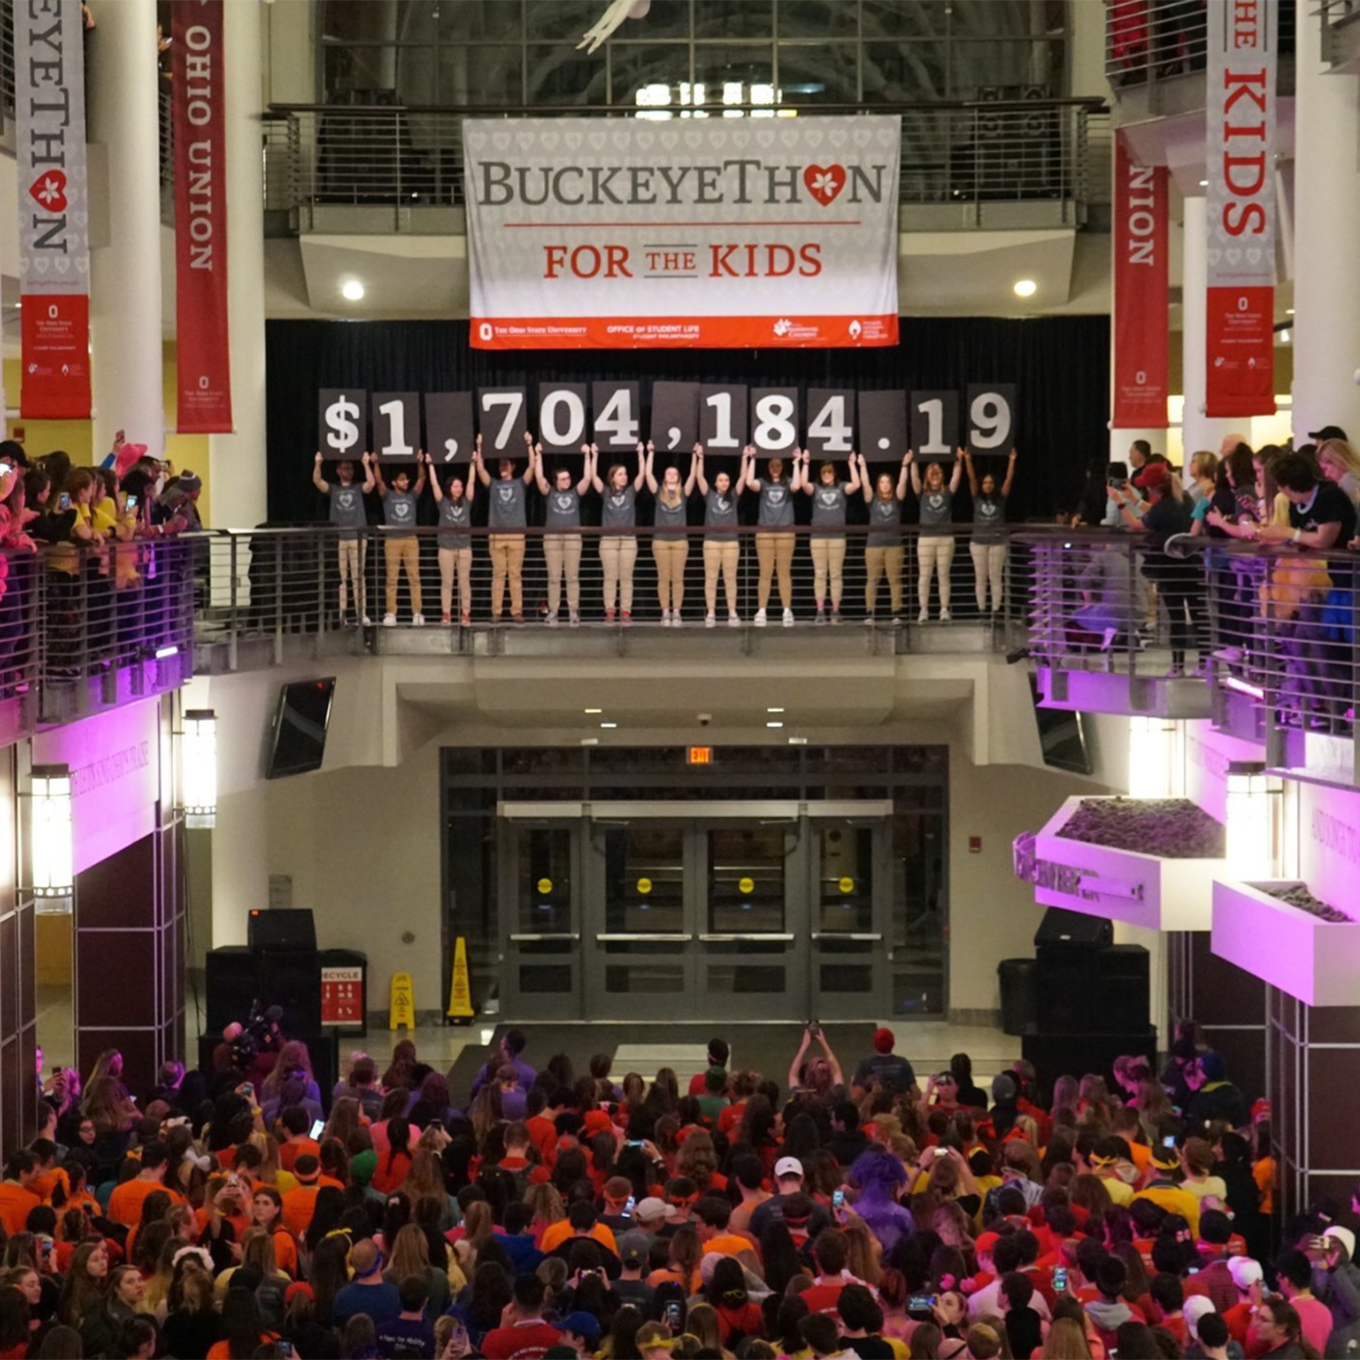 People gather in the Ohio Union to announce the amount raised by BuckeyeThon